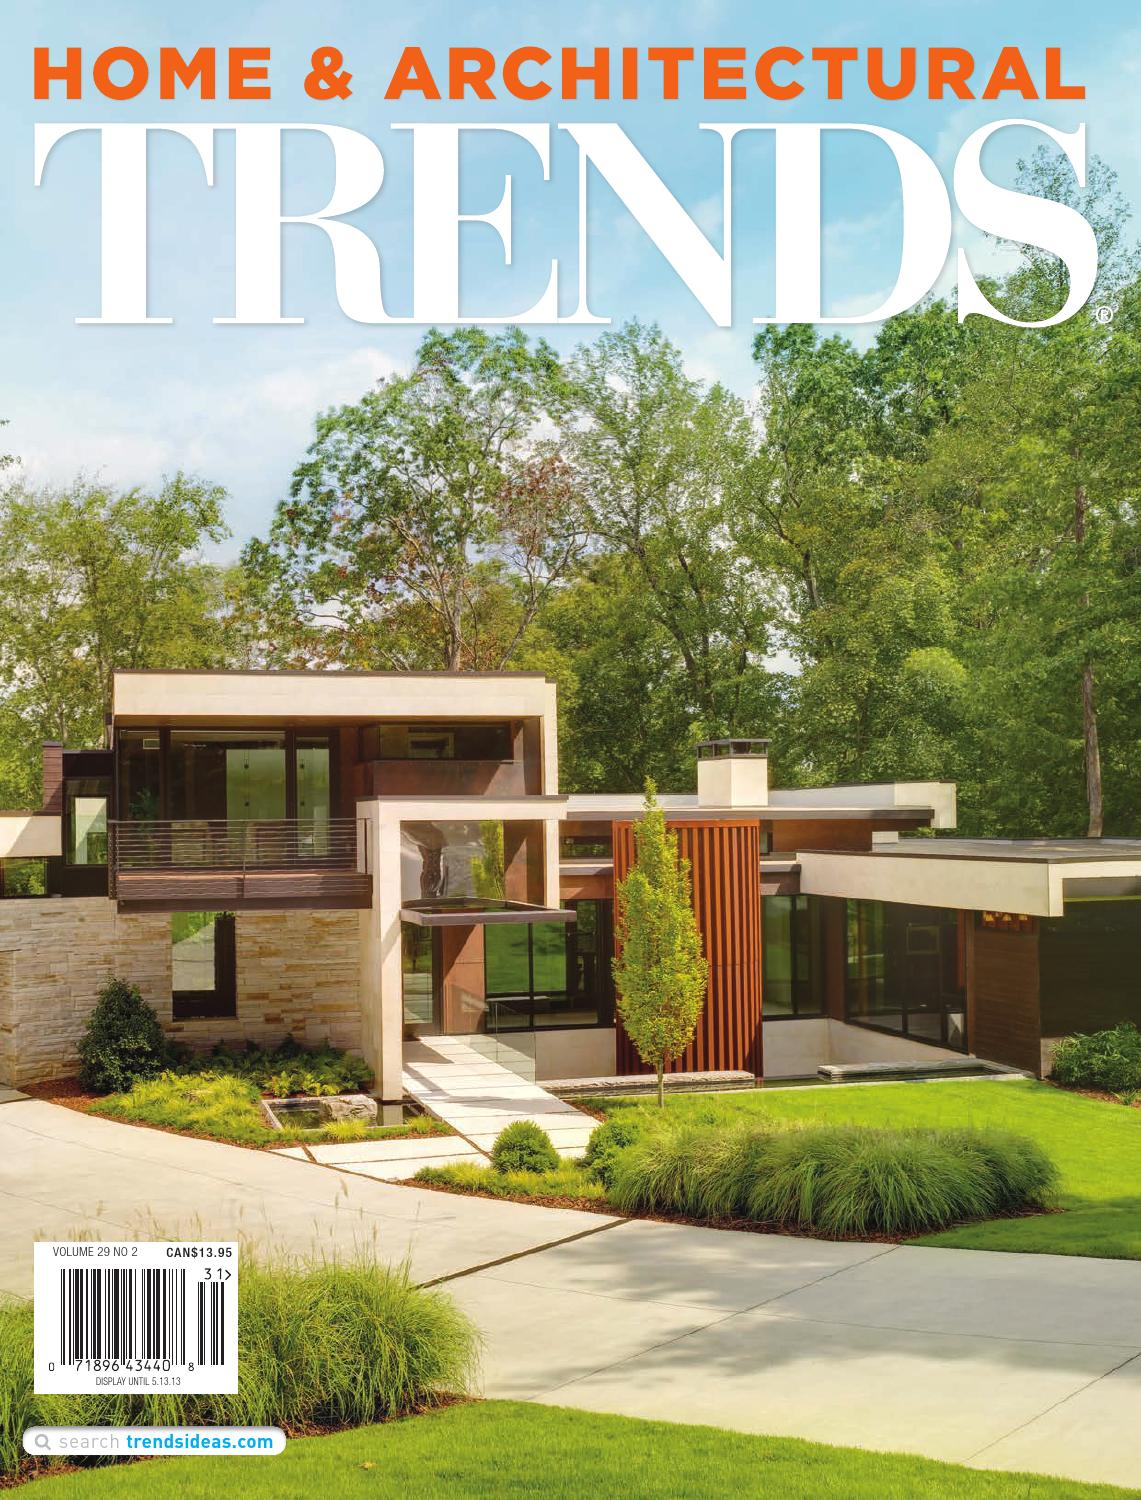 Home And Architectural Trends Magazine home & architectural trends usa vol 29/02trendsideas - issuu